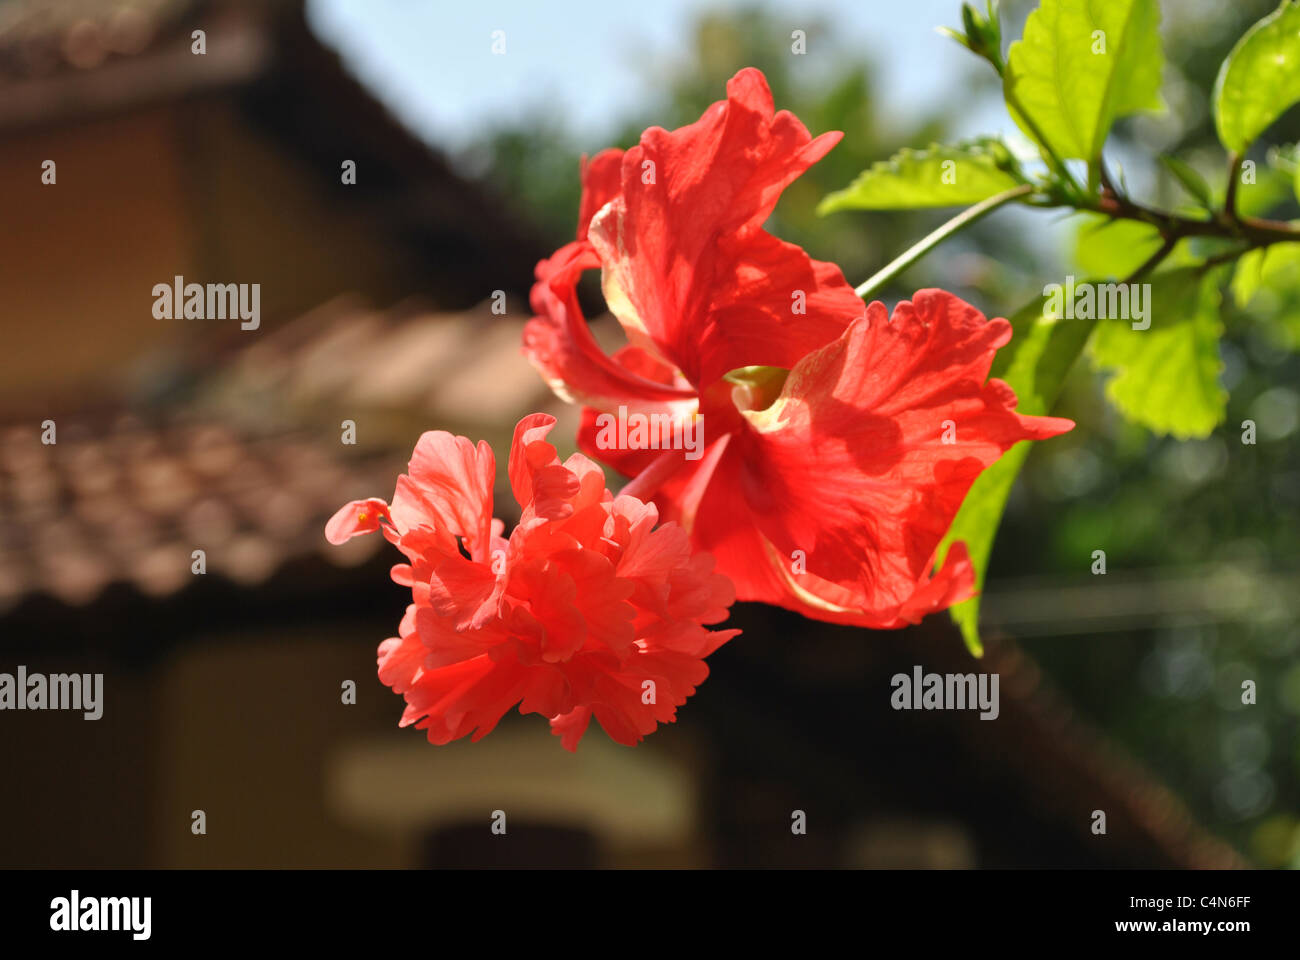 Hibiscus red flower - Stock Image